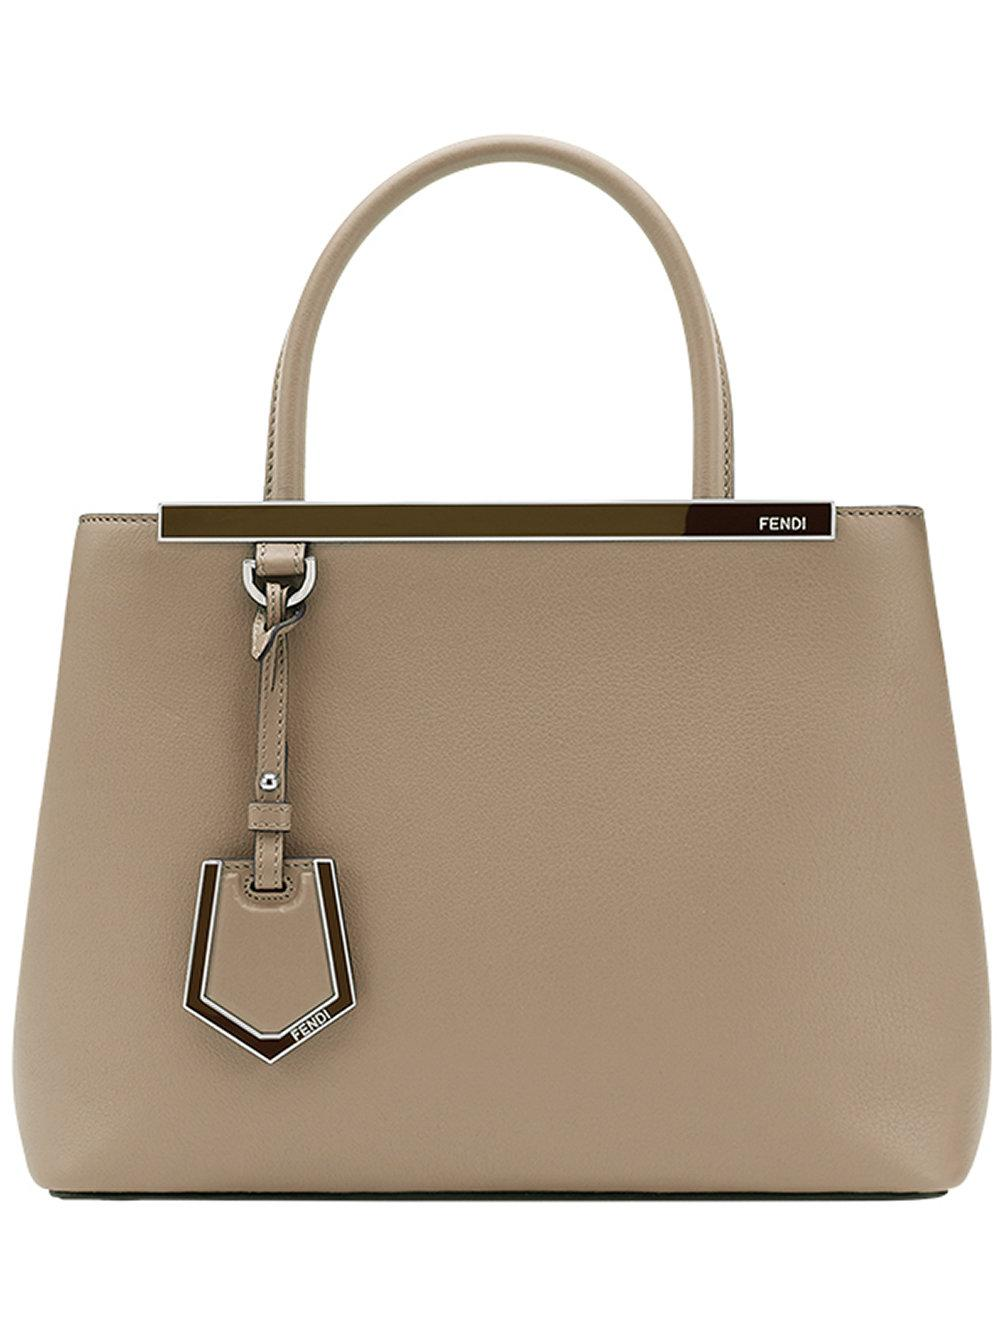 Fendi Petite 2jours Leather Shoulder Bag in Gray - Lyst c770b38895904